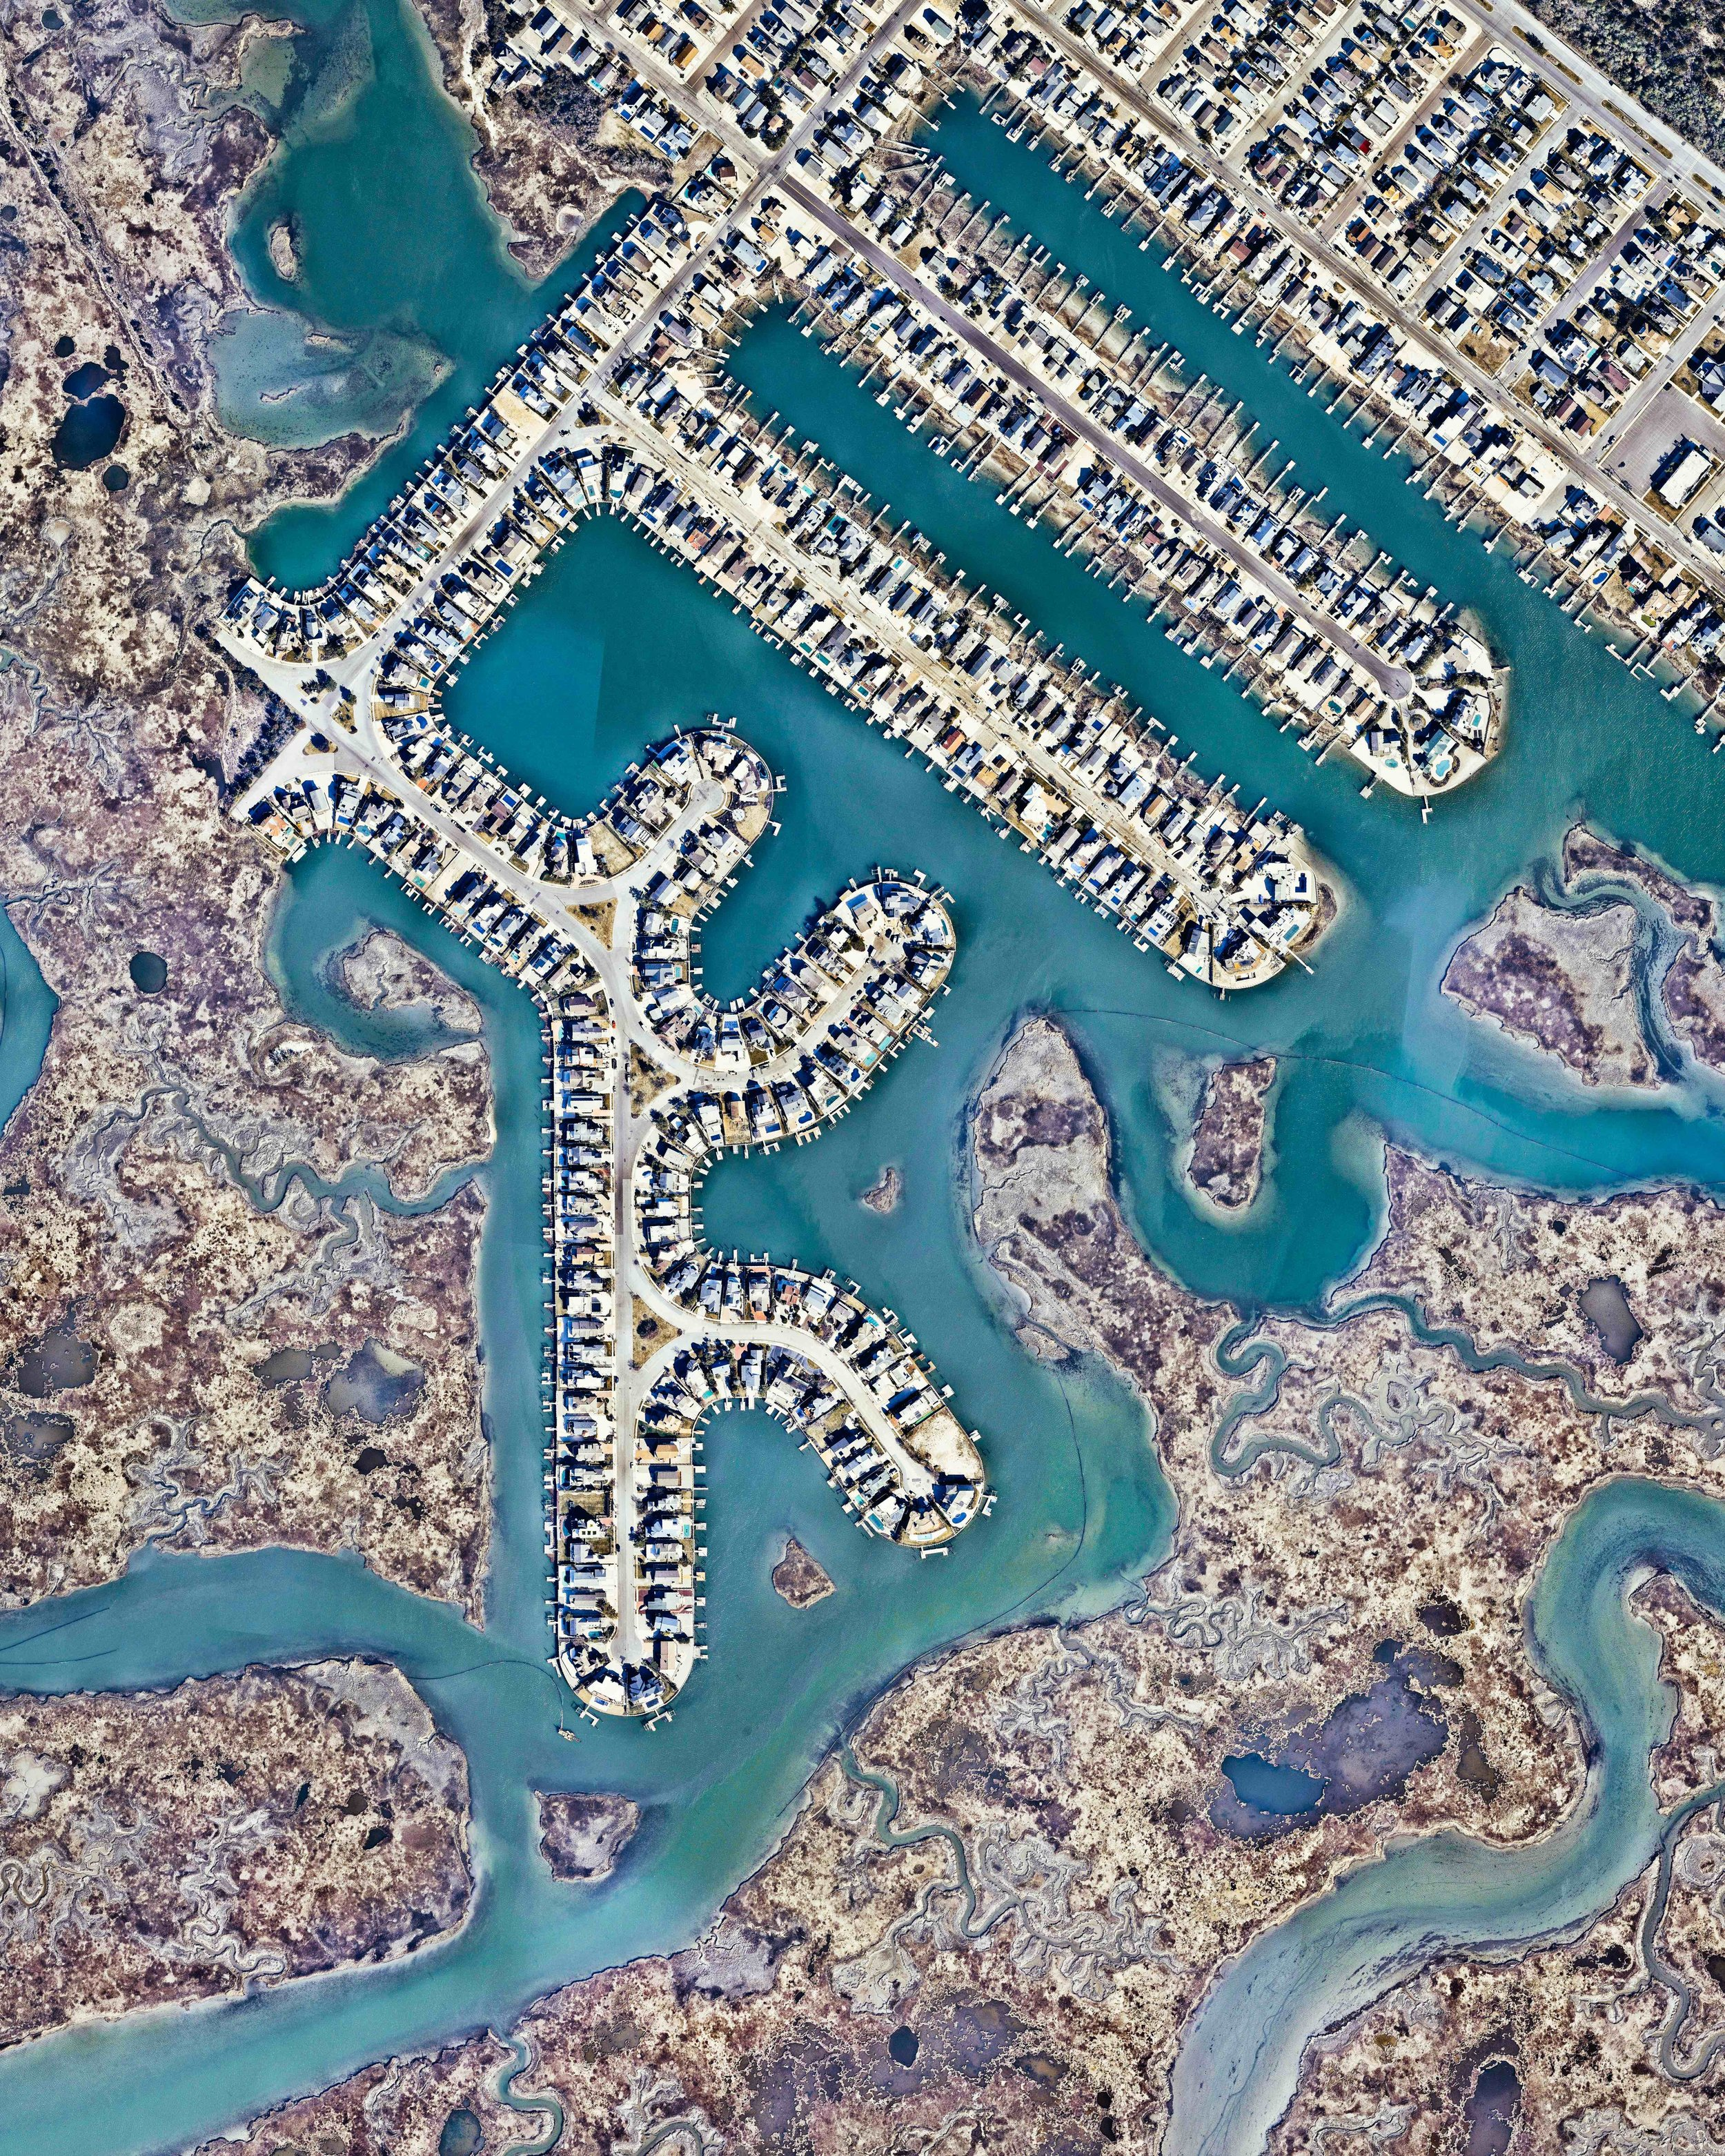 """Cottages line the waterways of Avalon, a coastal community in Cape May County, New Jersey. Avalon is home to some of the most expensive real estate on the East Coast of the United States.  39°05'20.0""""N, 74°44'18.9""""W  Source imagery: Nearmap"""